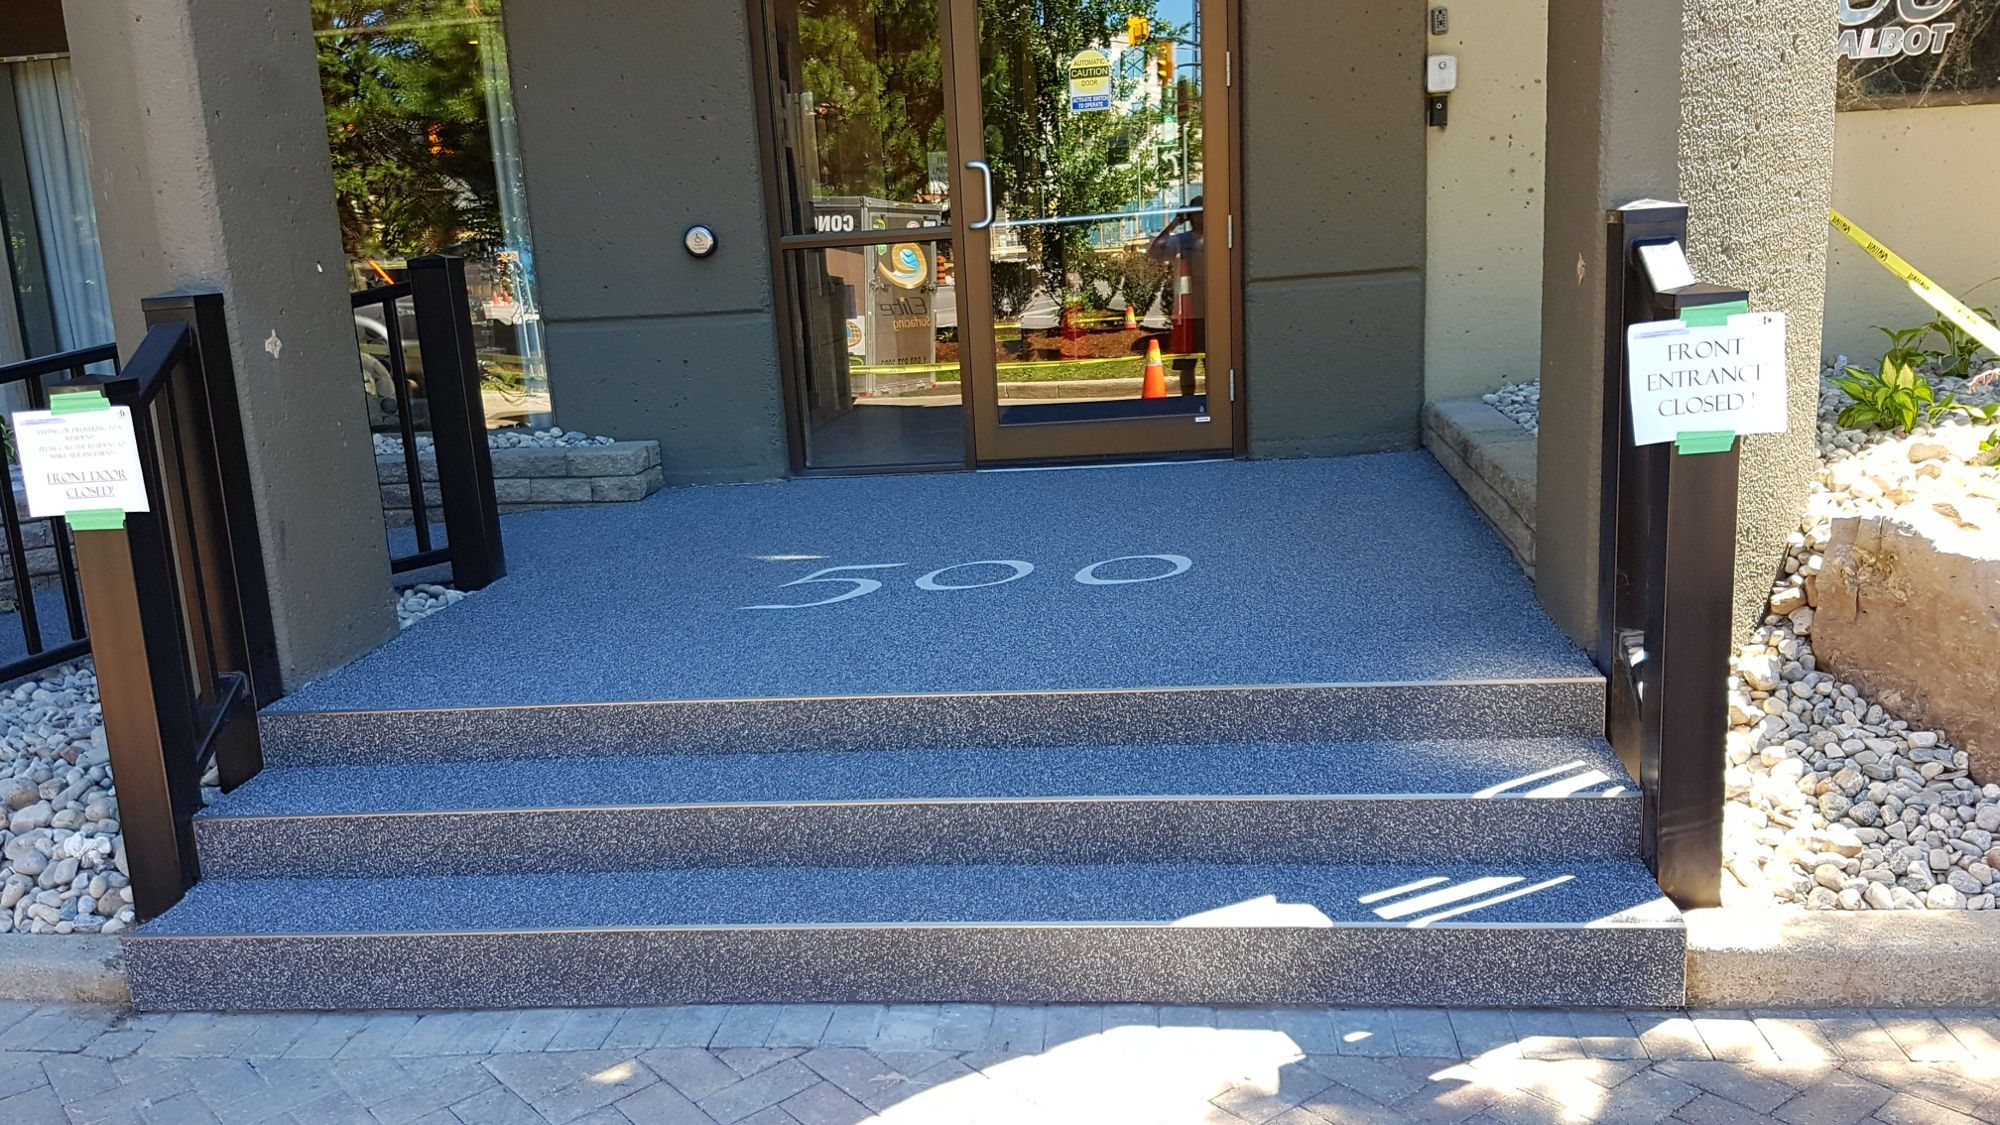 Building Number Entrance Rubber Surfacing